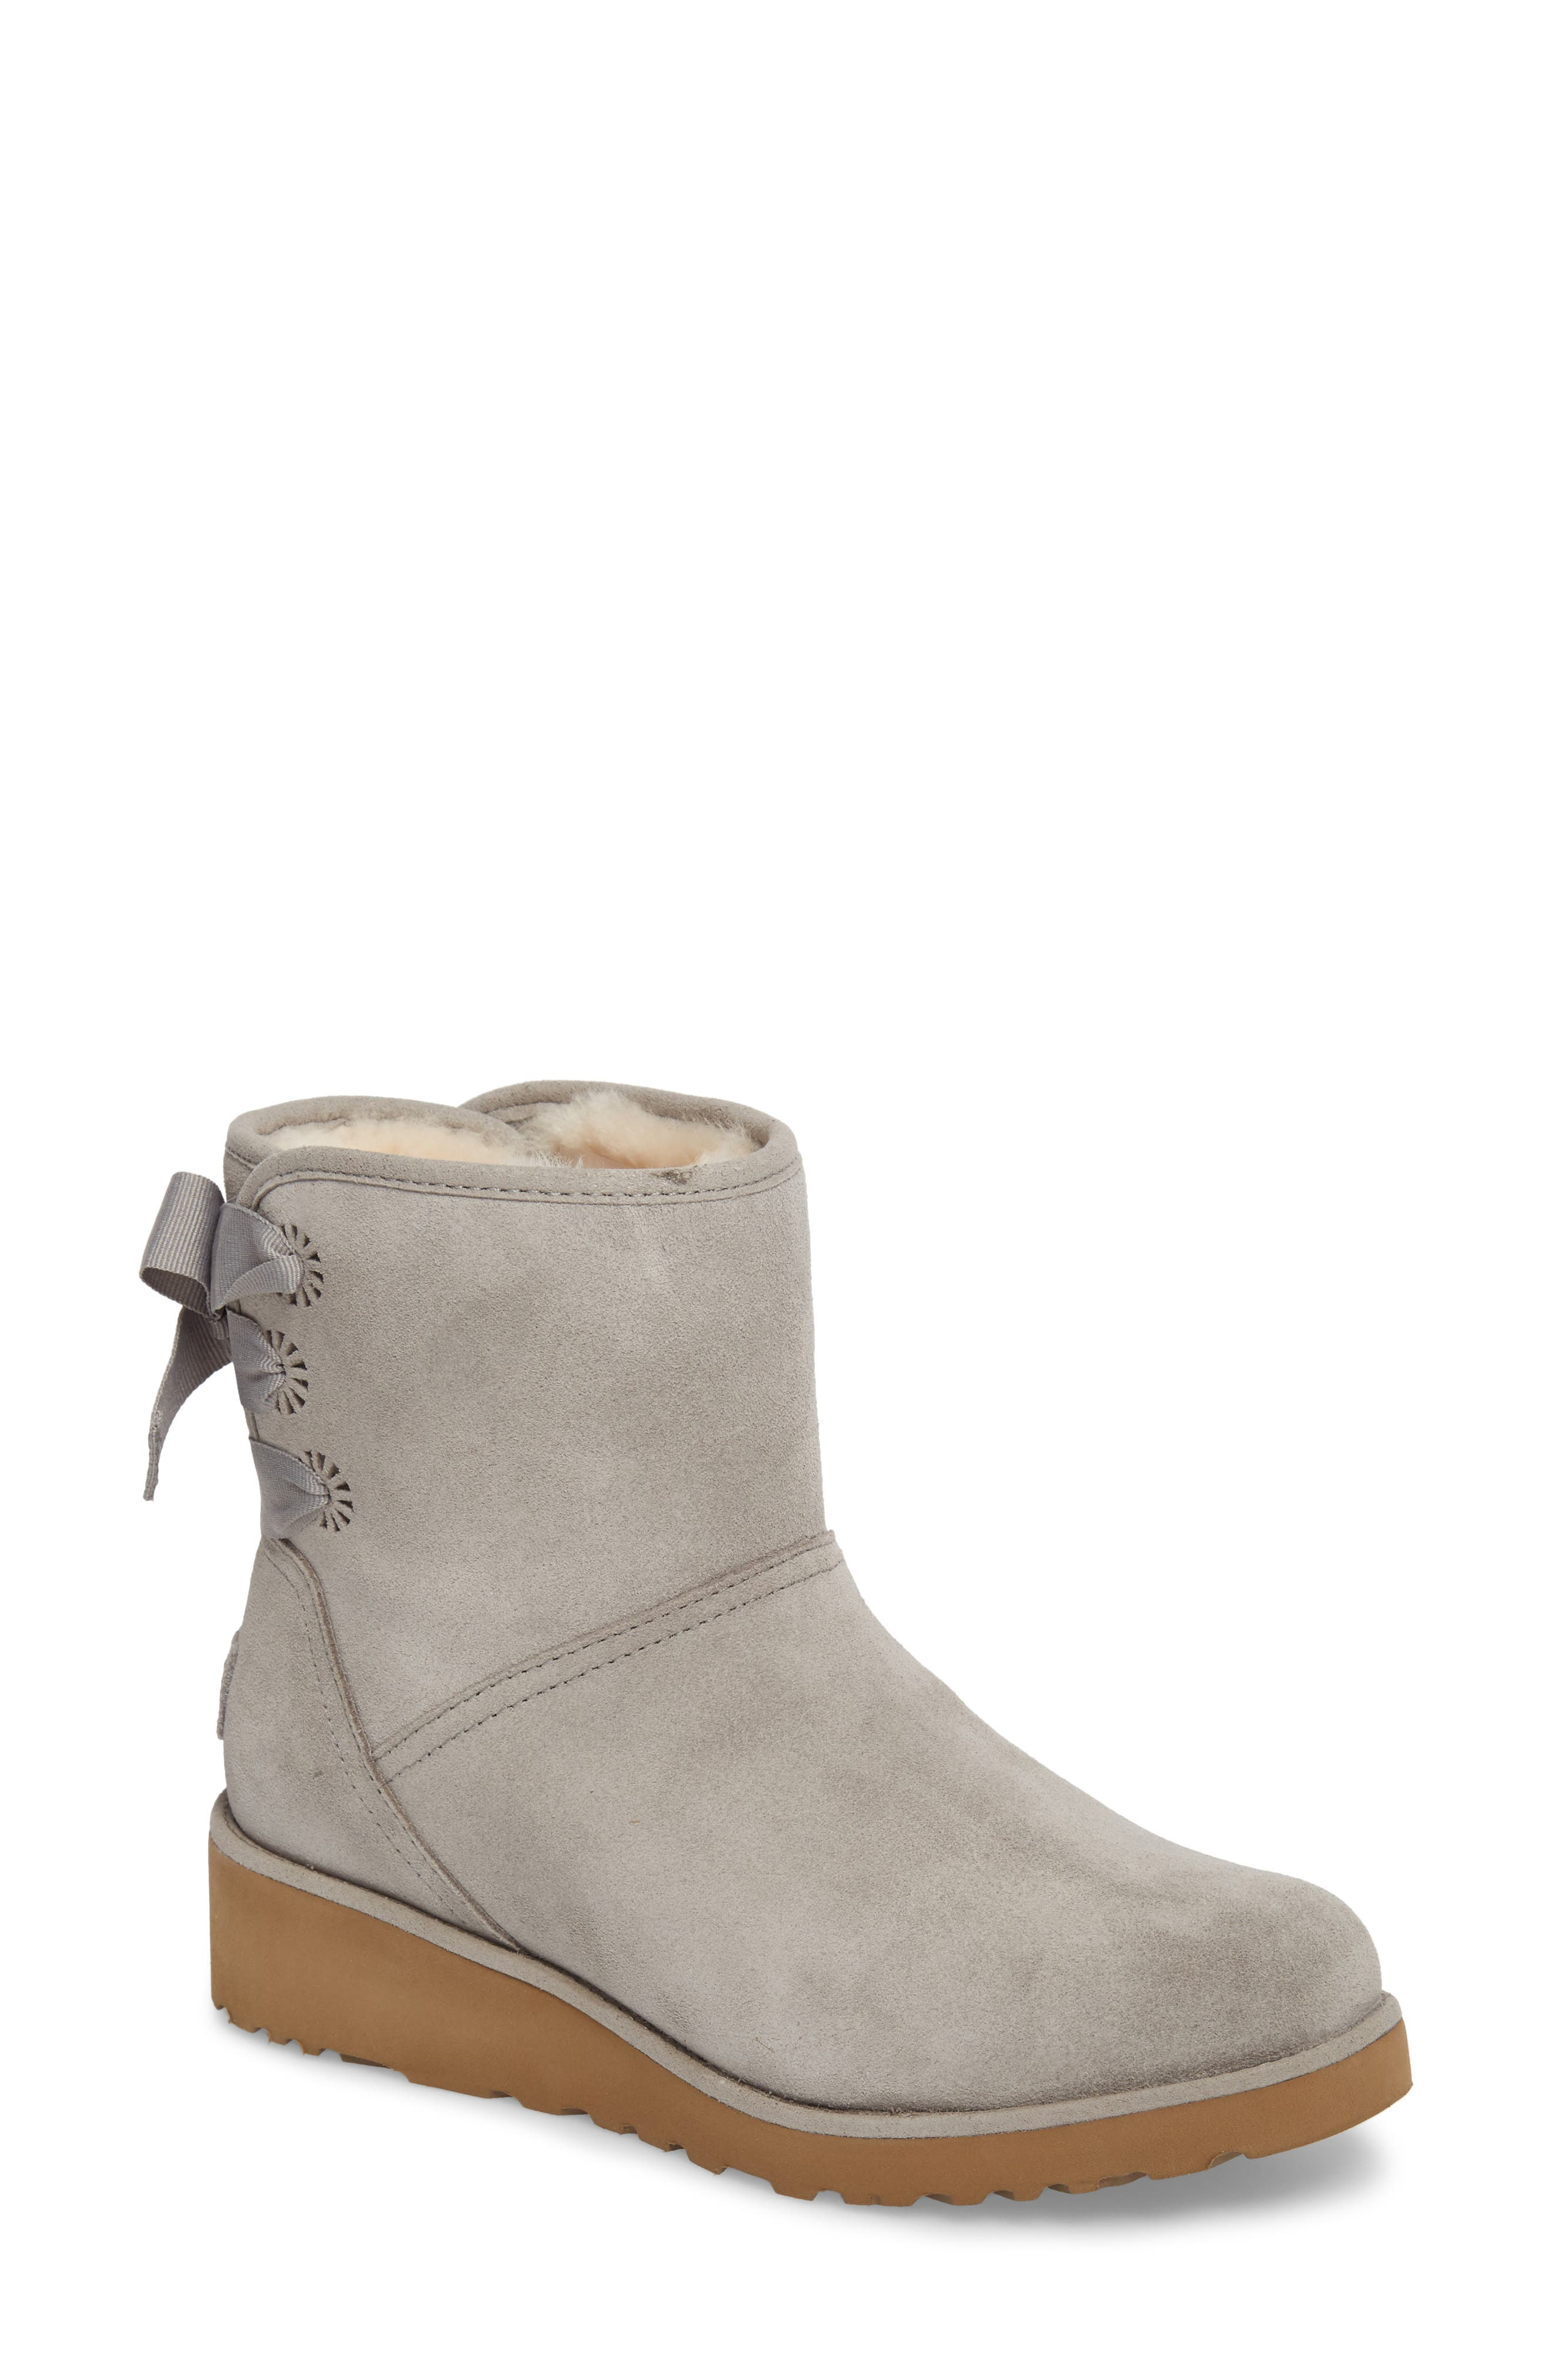 Drew Sunshine Perforated Tie Back Boot,                             Main thumbnail 1, color,                             Seal Suede